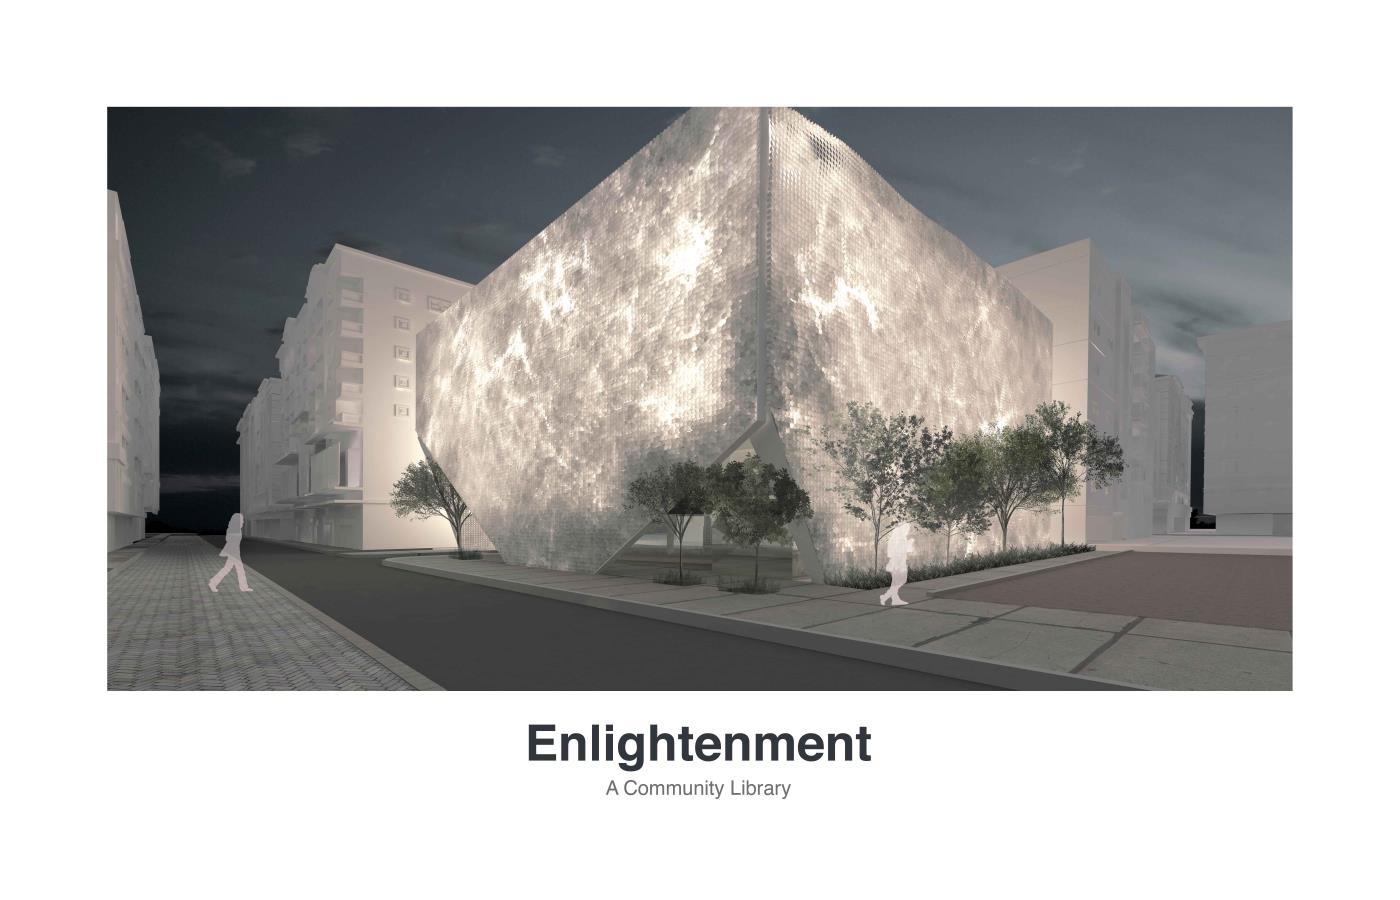 Enlightenment, A Community Library